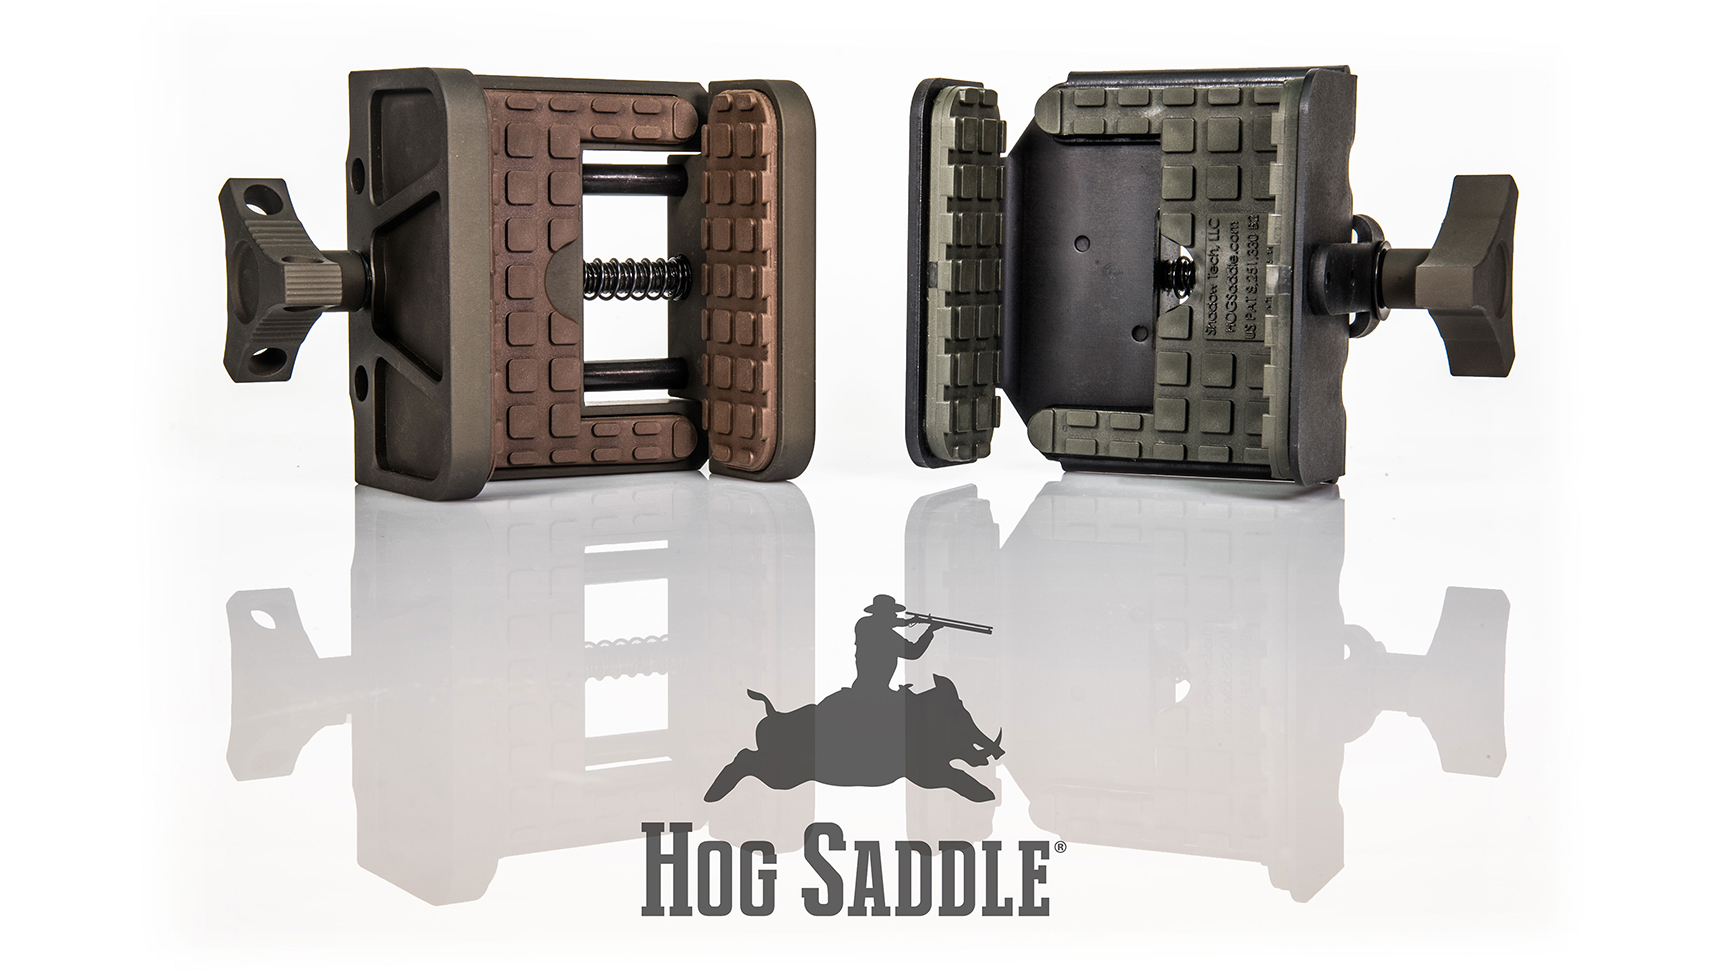 hog-saddle-pig-saddle-side-by-side-comparison-shadow-tech-llc-2-.jpg